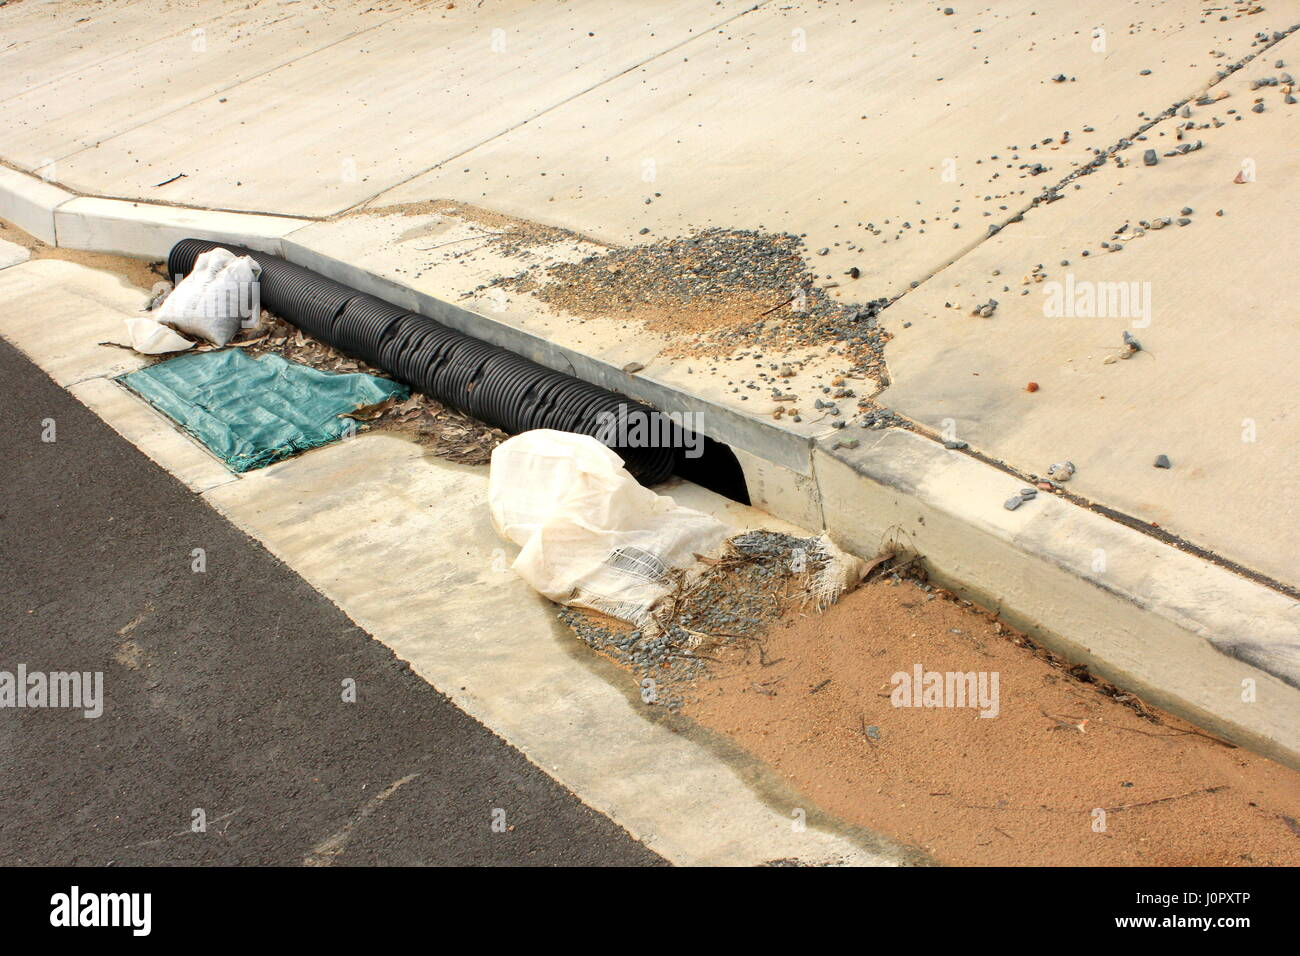 Residential storm waterdrain with barriers for protection during estate construction - Stock Image